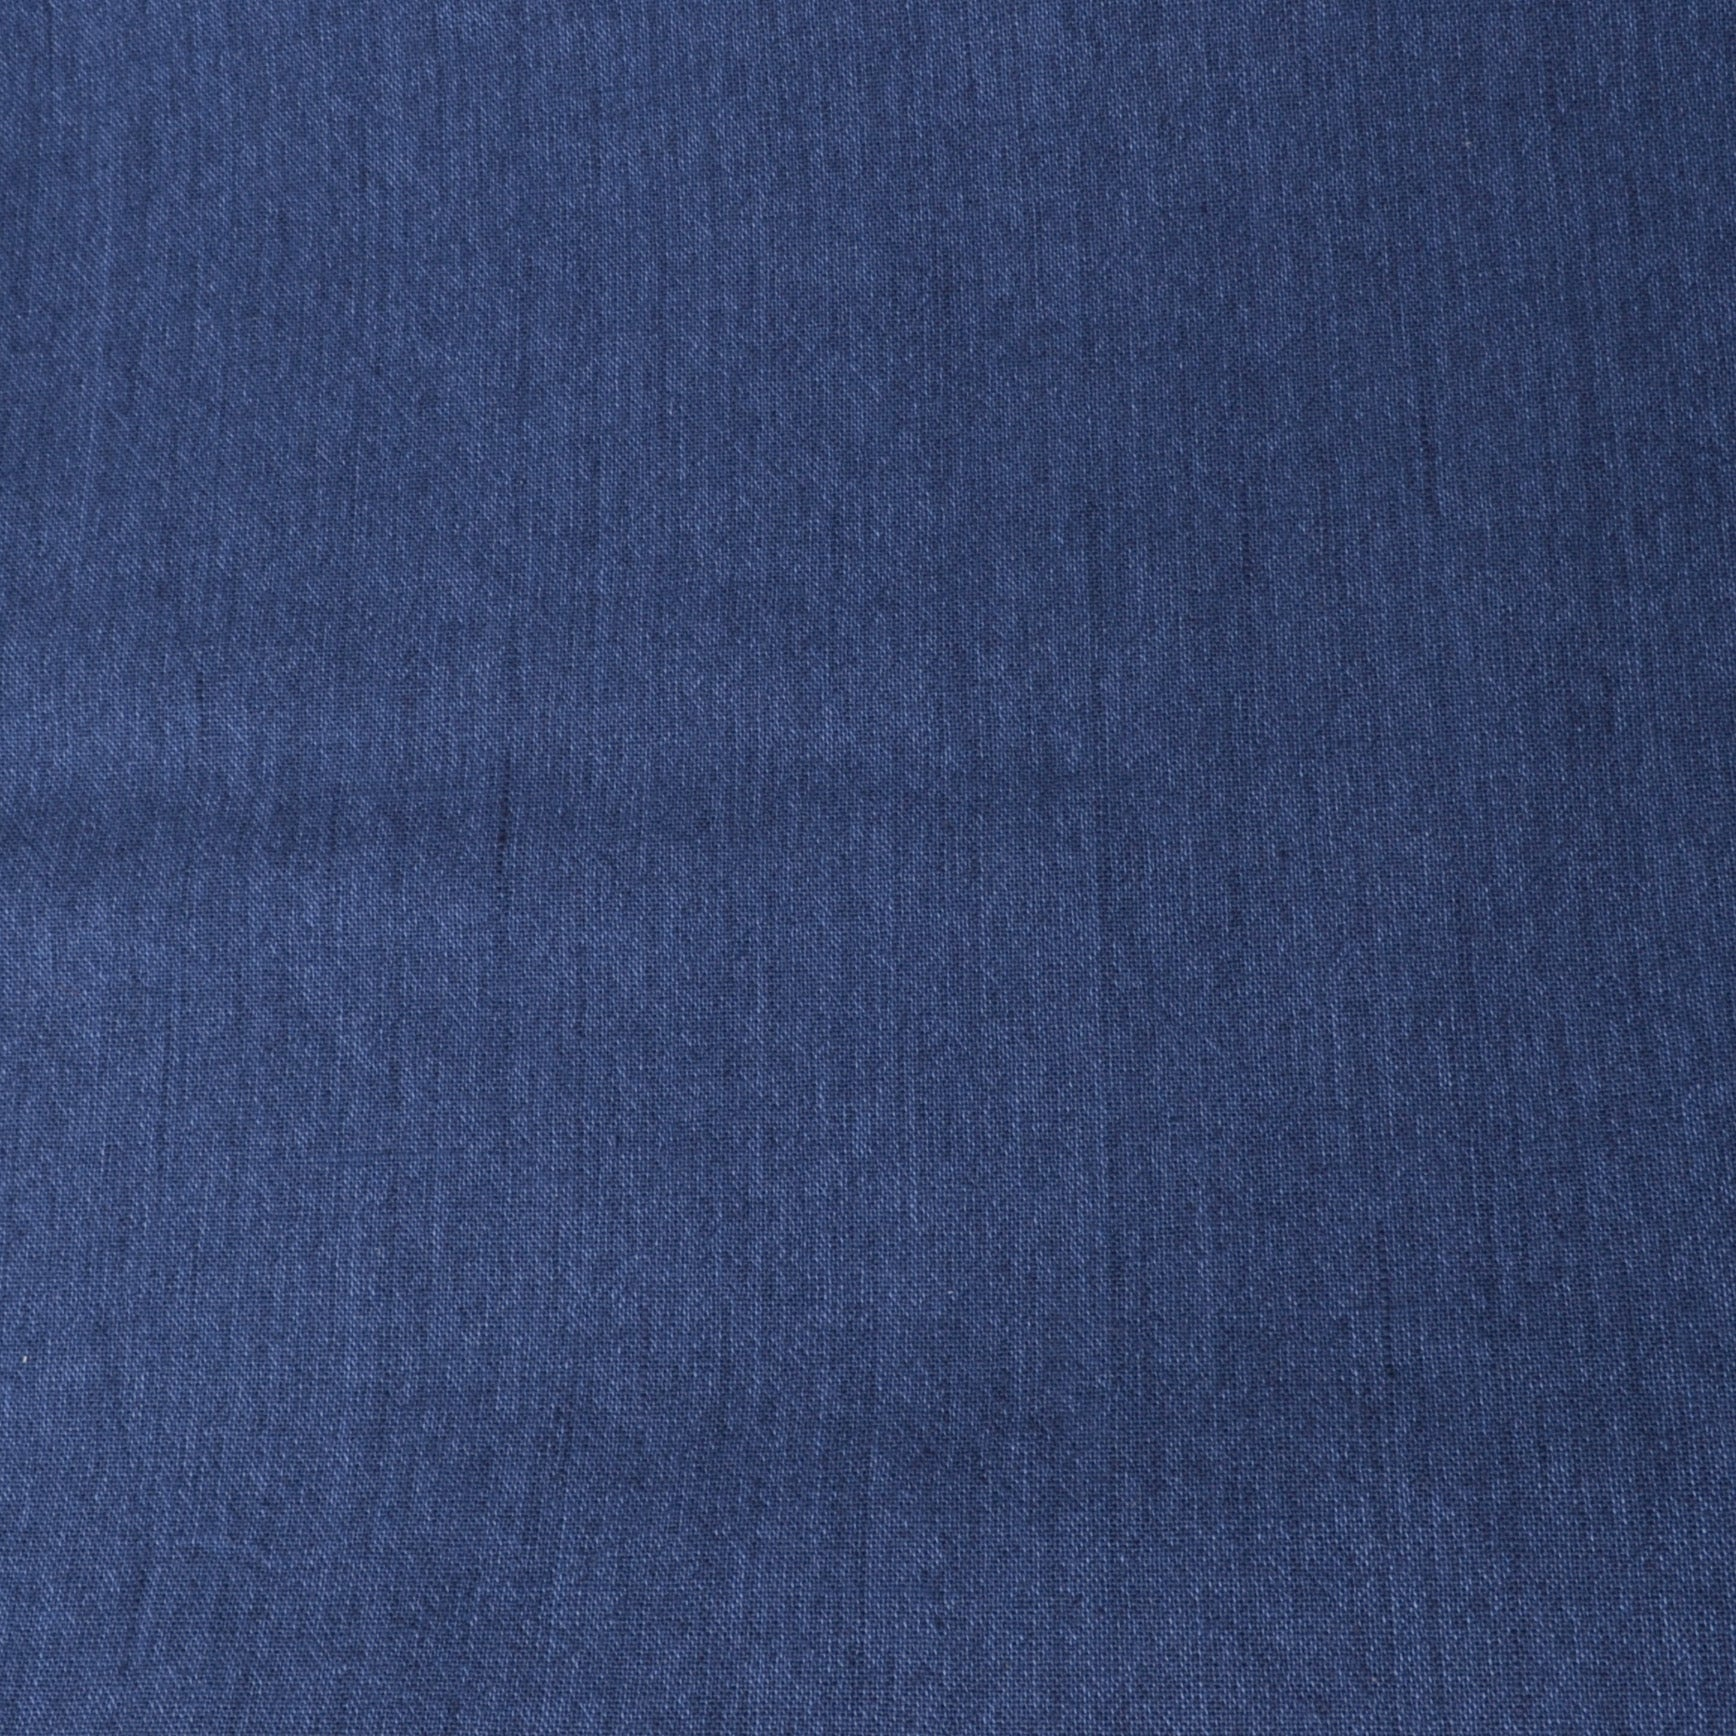 Dyed Yarn Cotton Fabric A Threaded Needle